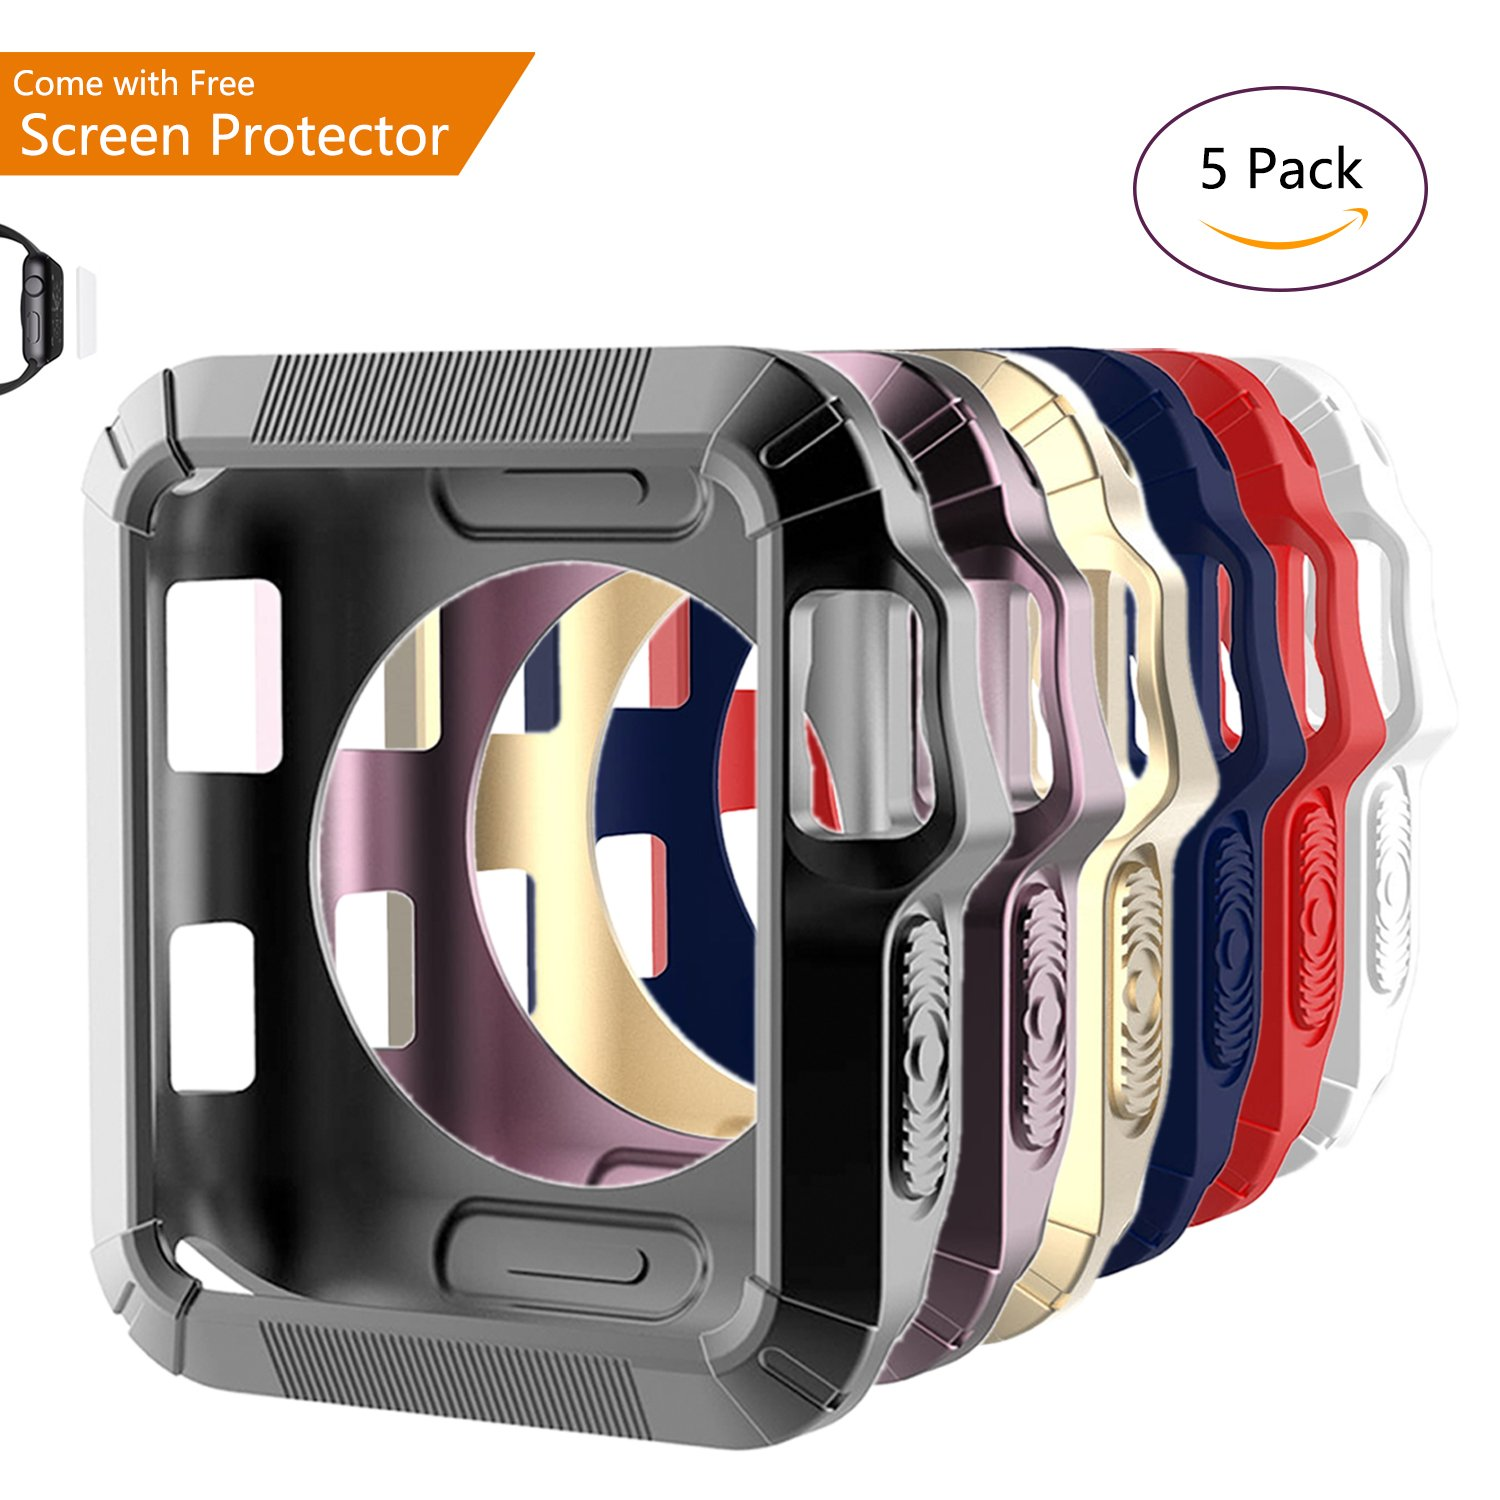 6-Pack [Comes with FREE Screen Protector] Kinature 38mm Apple Watch Bumper Case (Revel Bumper) Fashion Case - Compatible with Apple Watch Series 1, Series 2, Series 3 and Nike+ (38mm)